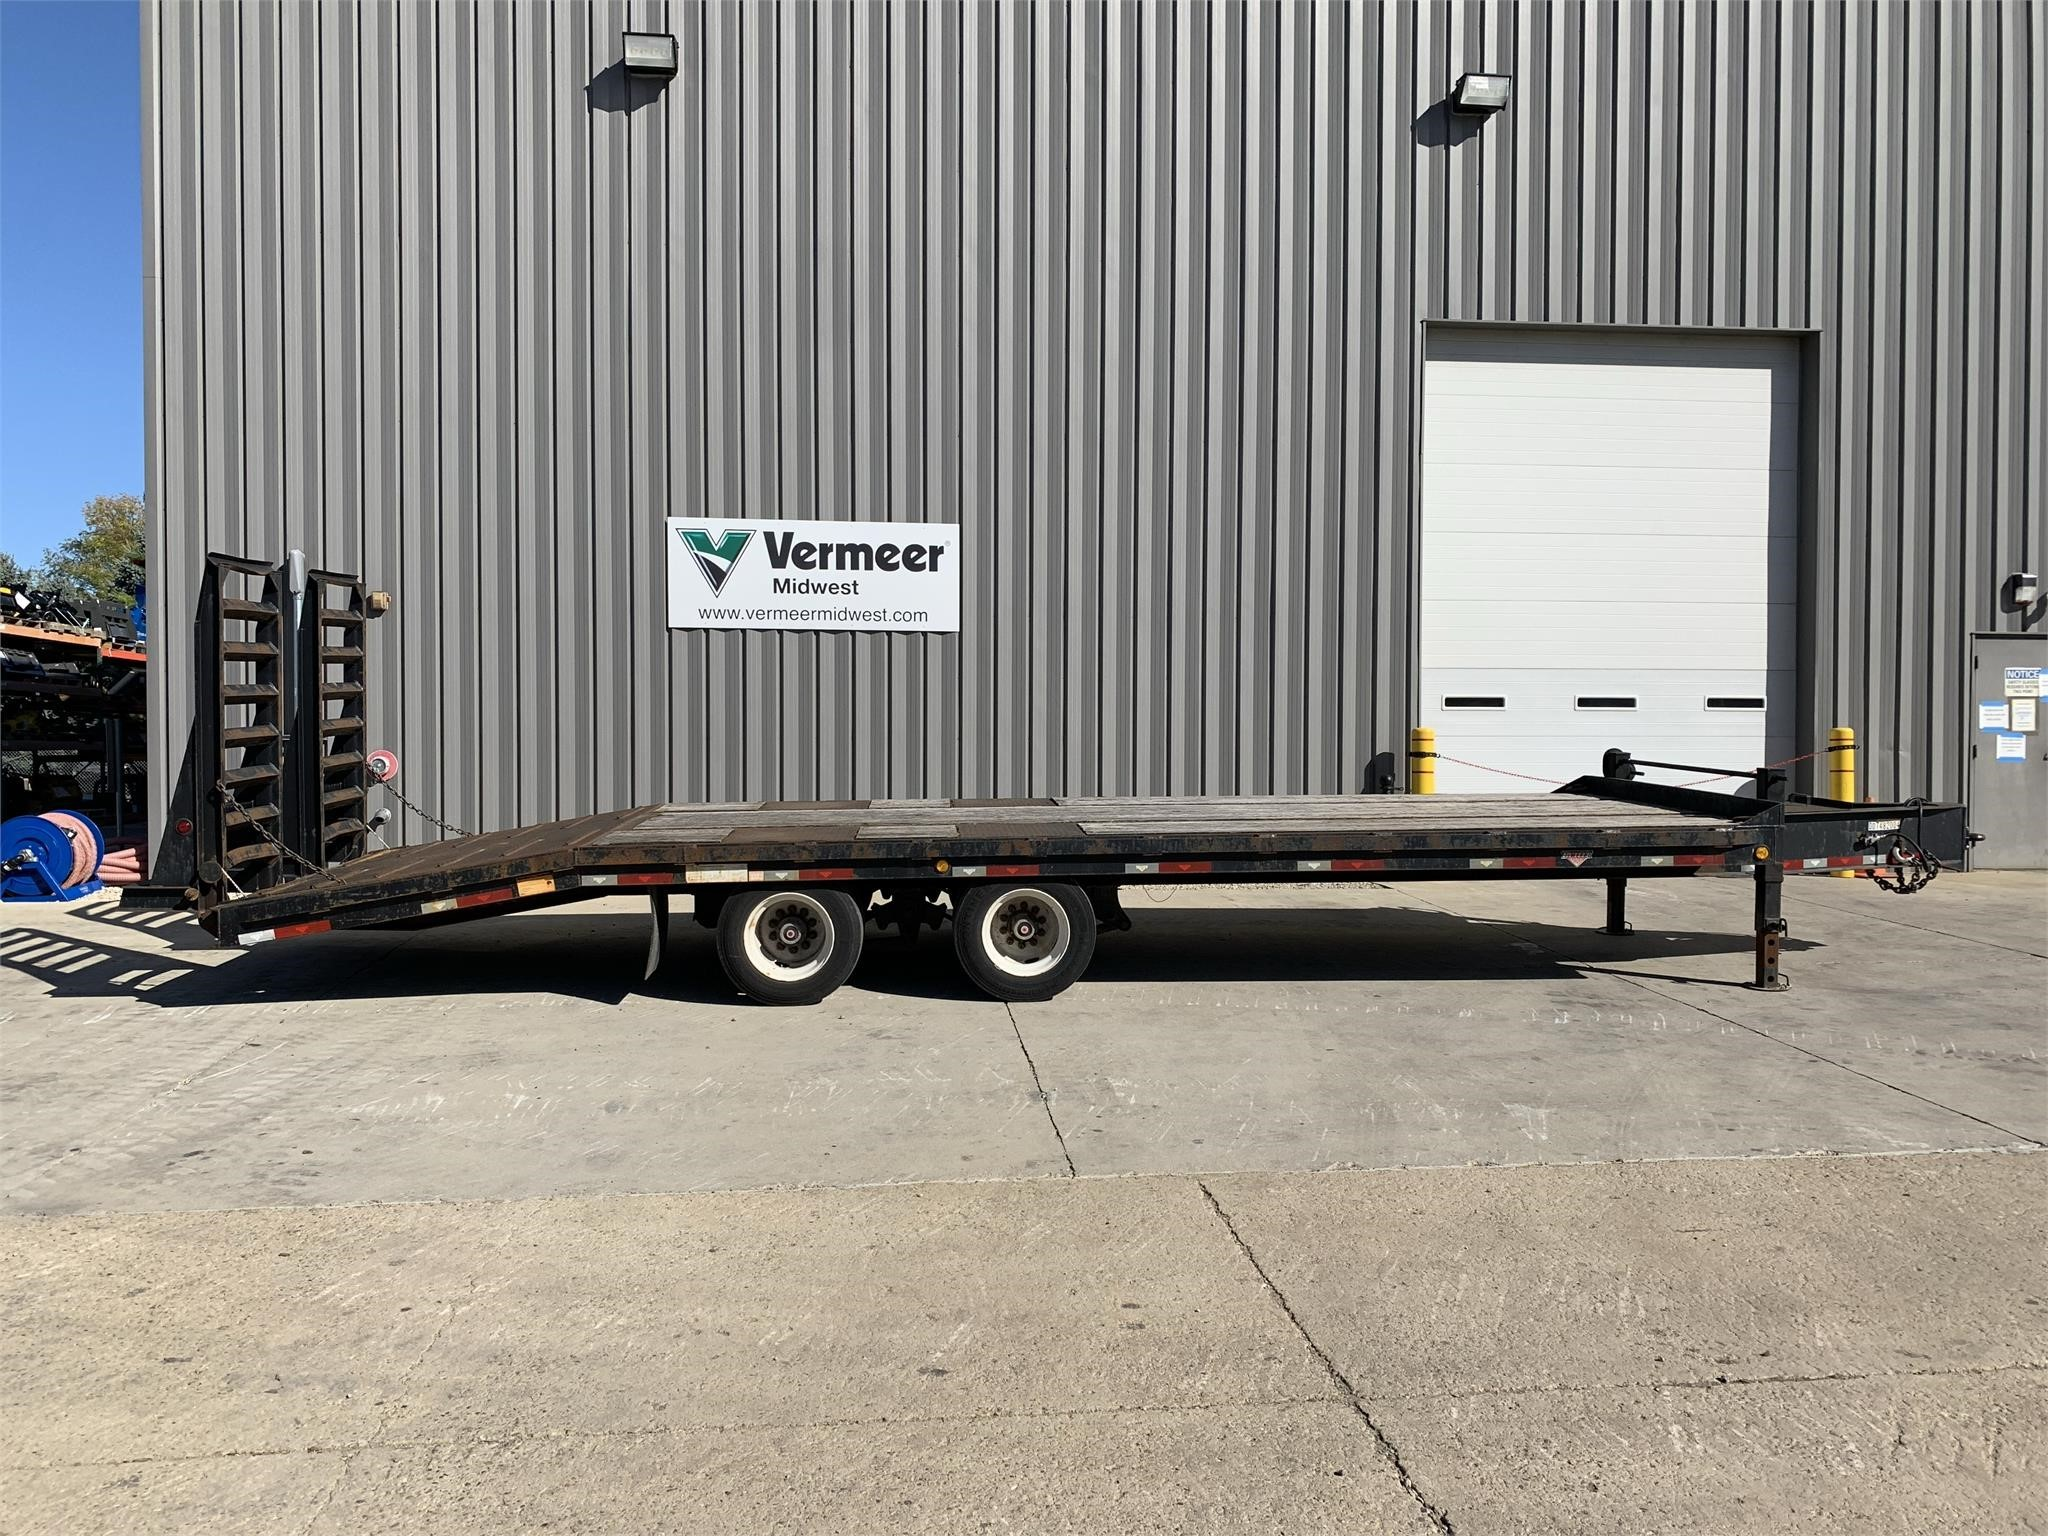 Used, 2012, BUTLER, B4027, Trailers - Utility / Light Duty Trailers - Equipment Trailers - Flatbed